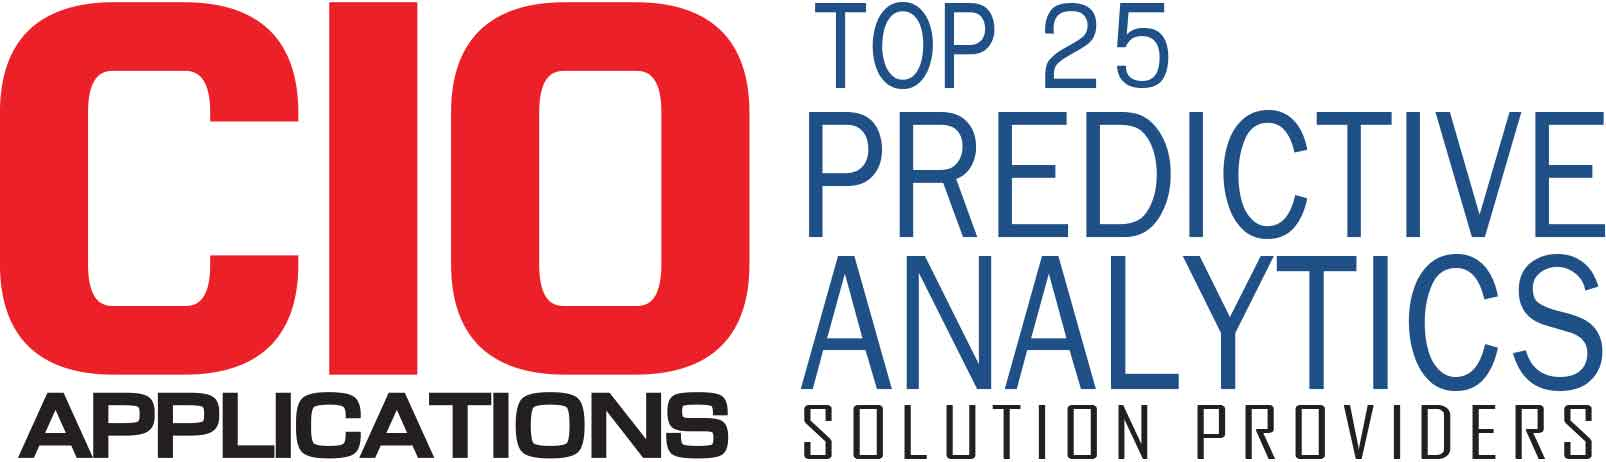 Top 25 Predictive Analytics Solution Companies - 2019